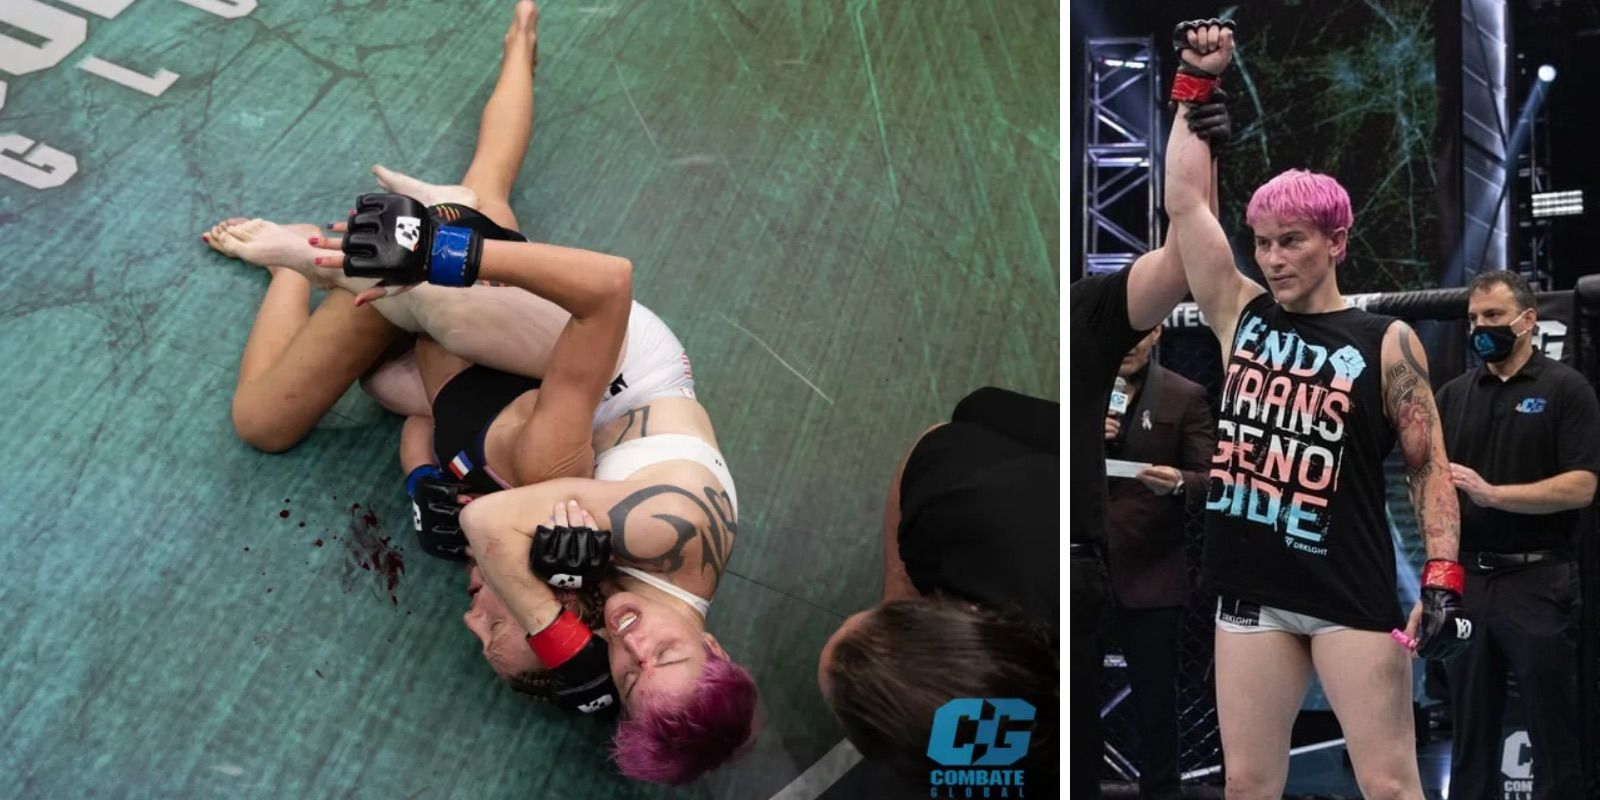 Trans woman fighter beats woman to submission in MMA match